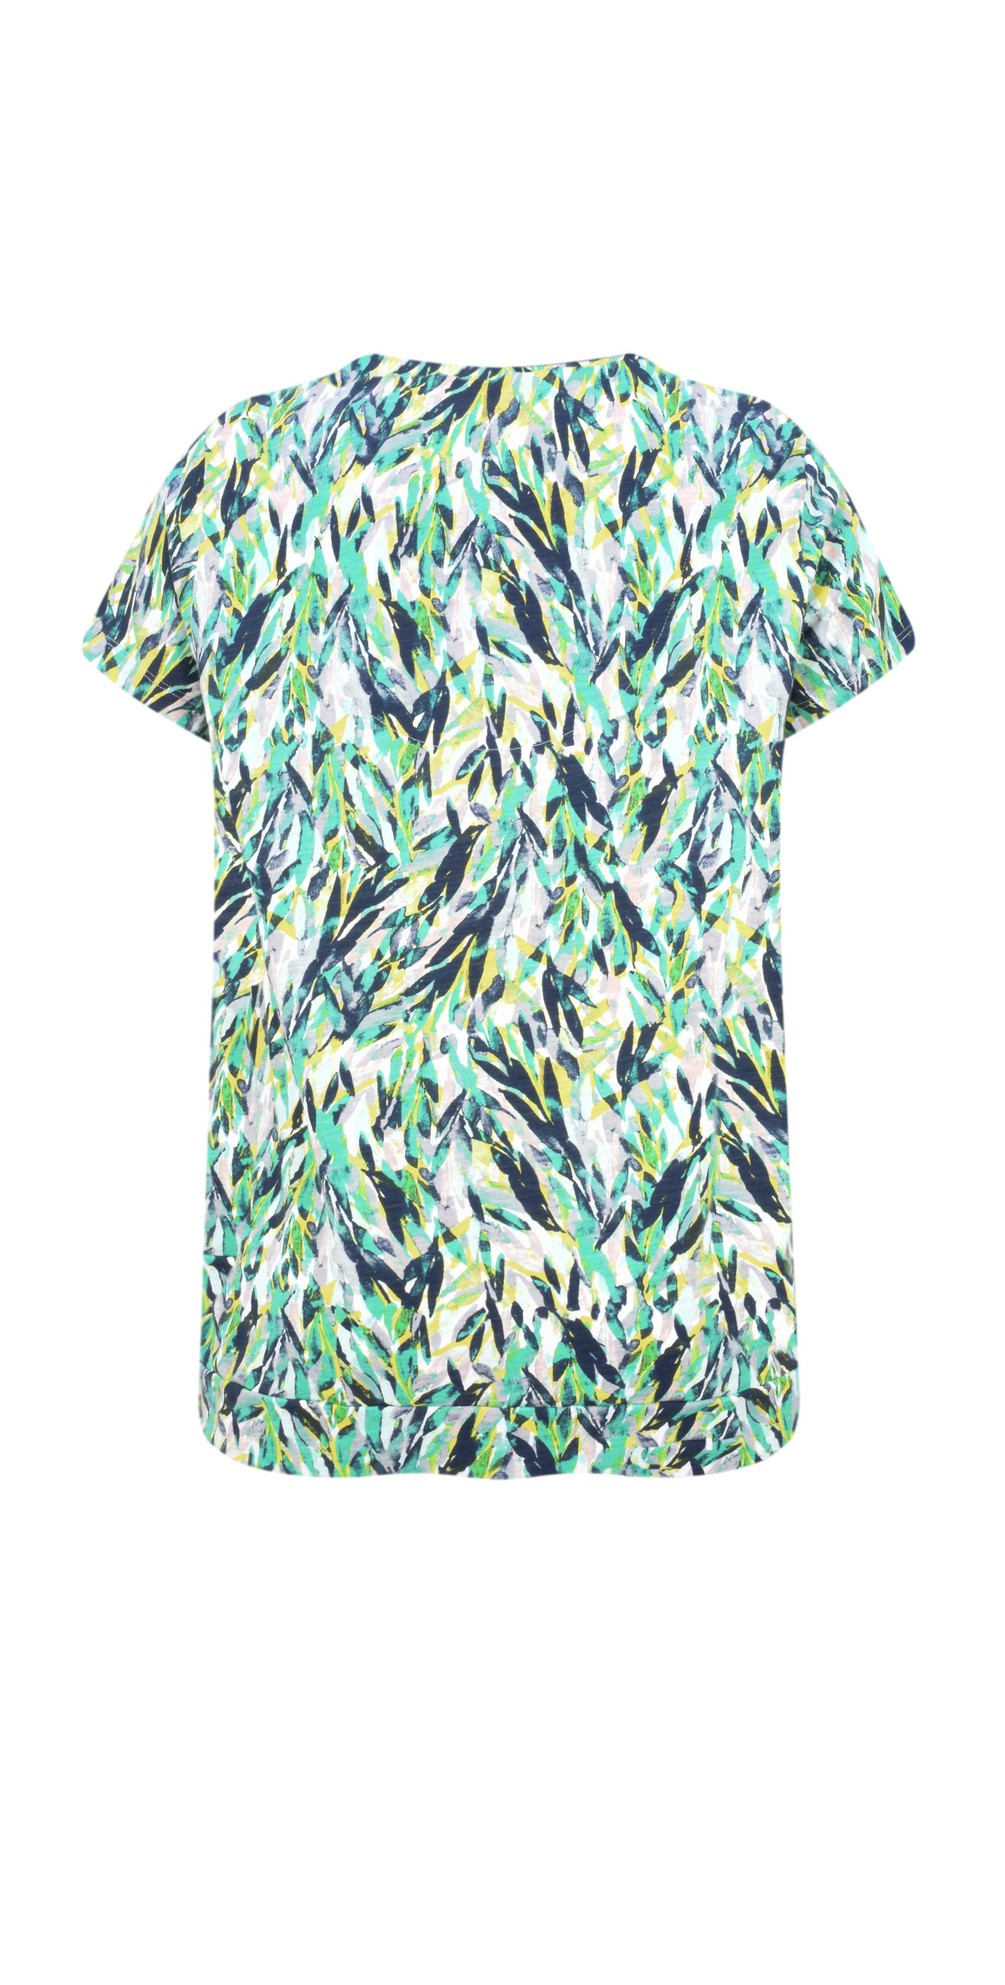 659eb685380 Sandwich Clothing Abstract Jersey Print Top in Jolly Green